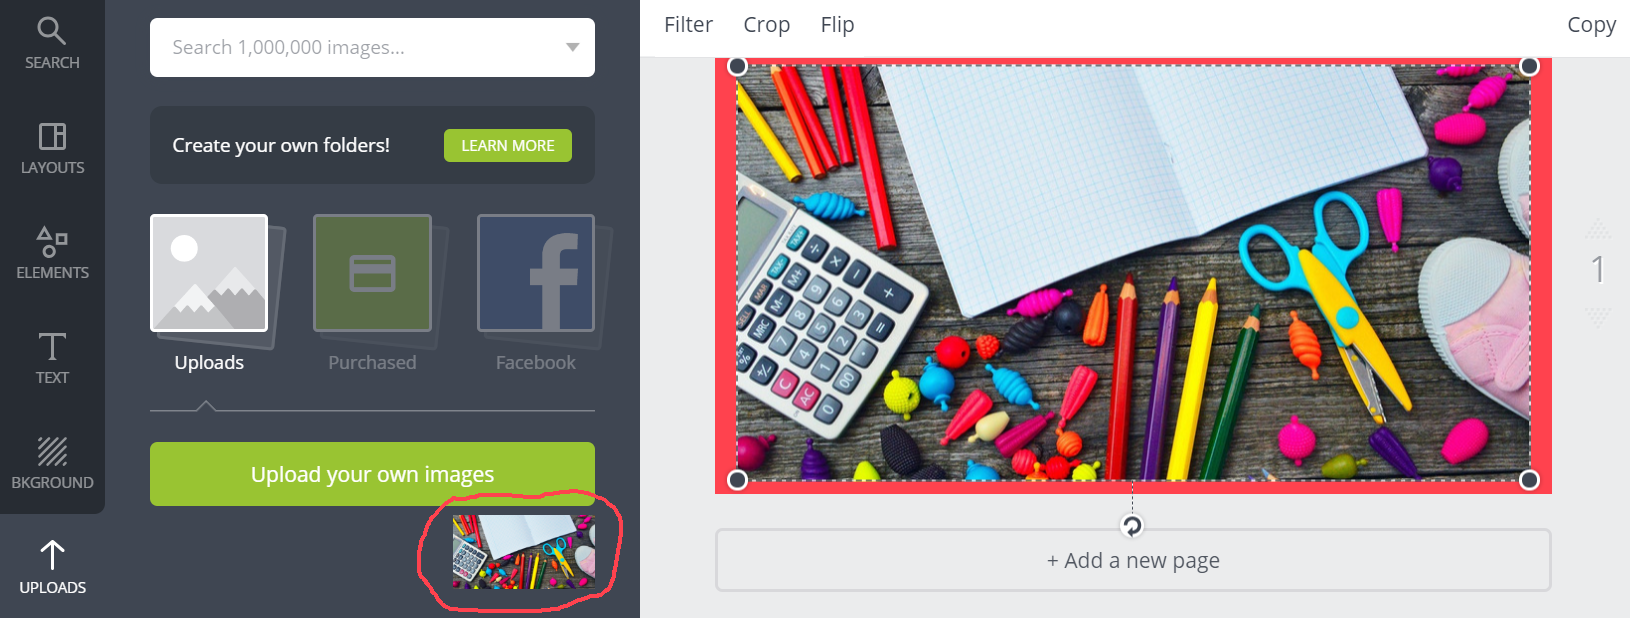 Create Featured Images - Step 5